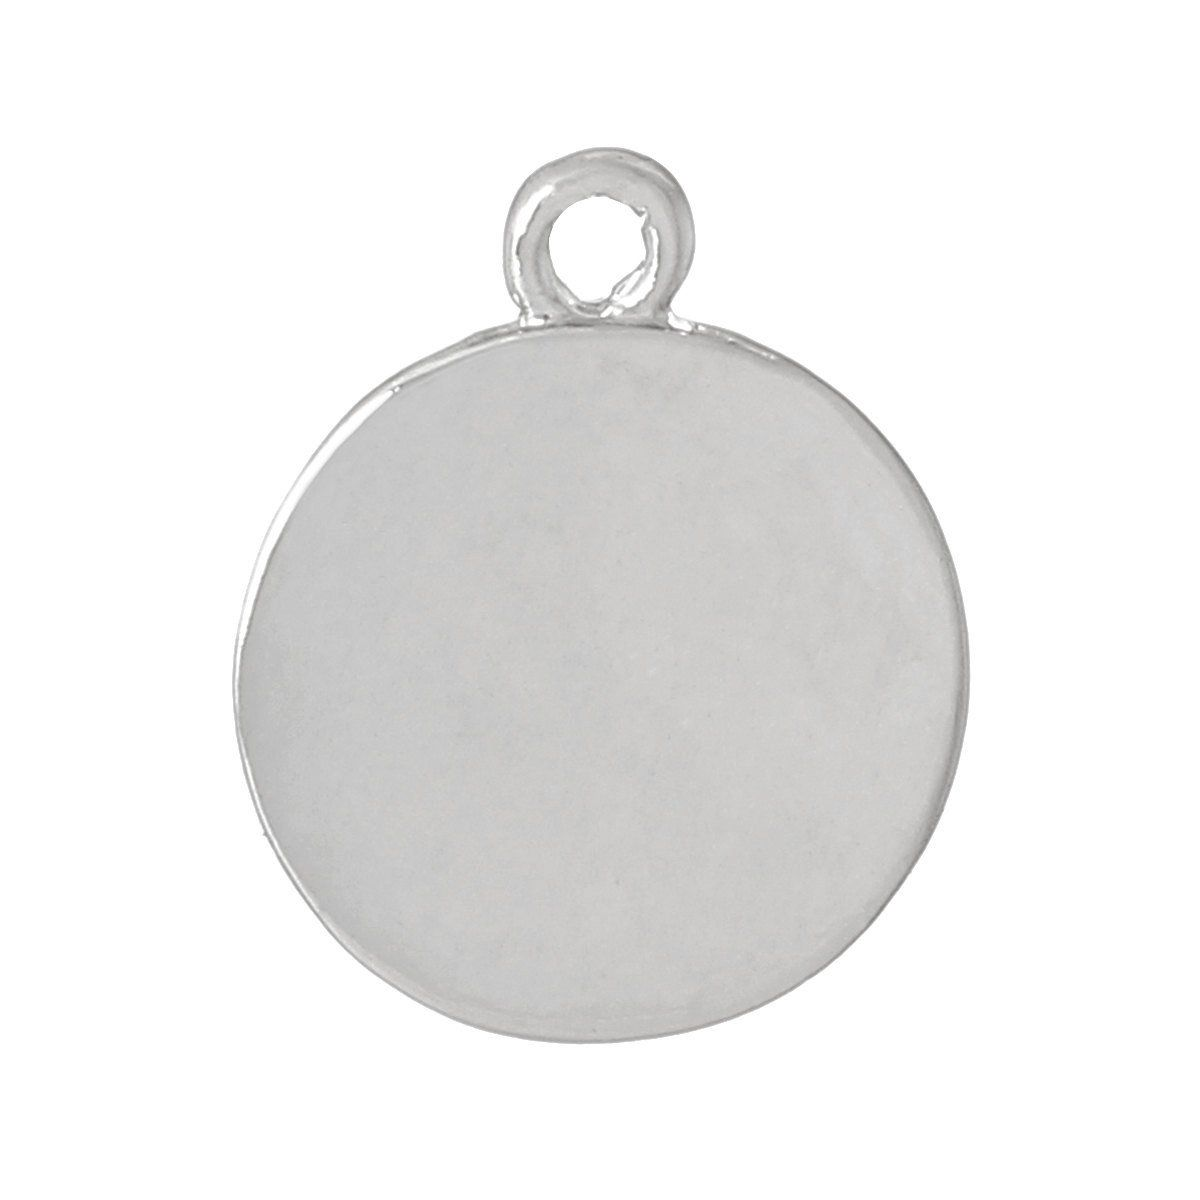 4 Thick Silver Zinc Metal Circle Disc Stamping Blanks Charms Pendants 1 2 Stamping Blanks Metal Stamping Blanks Metal Stamping Craft